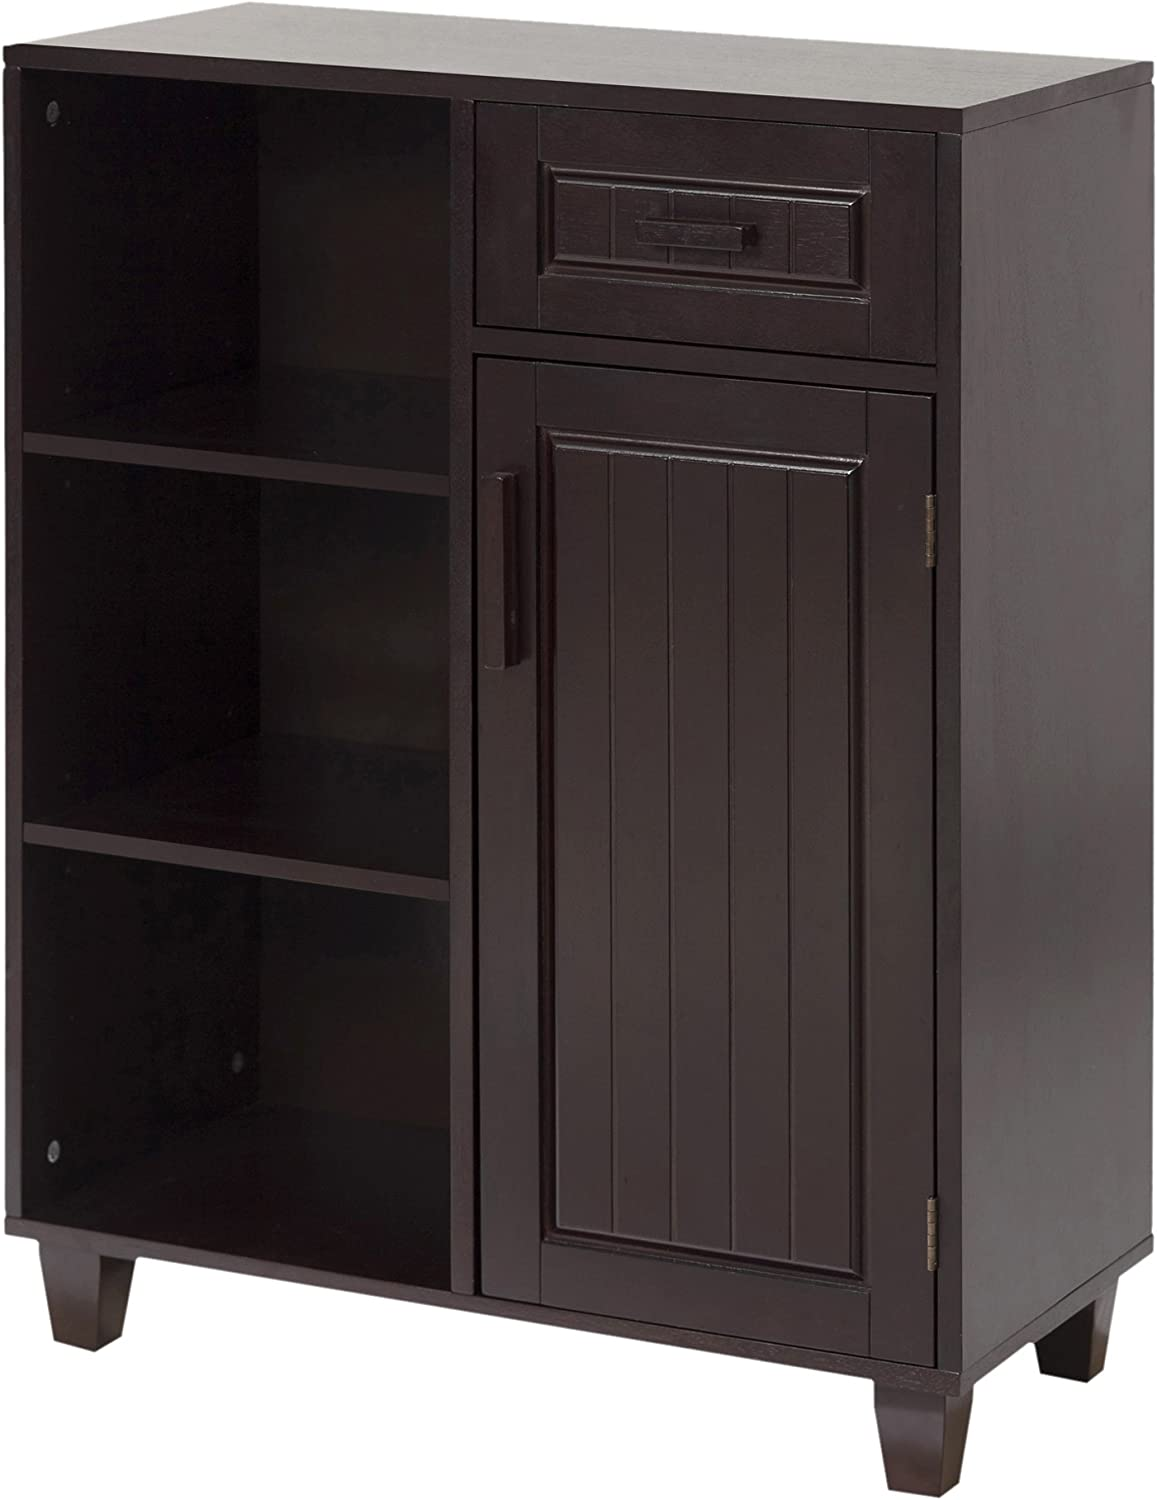 "Elegant Home Fashions Catalina 26"" 1-Door Floor Cabinet in Dark Espresso"